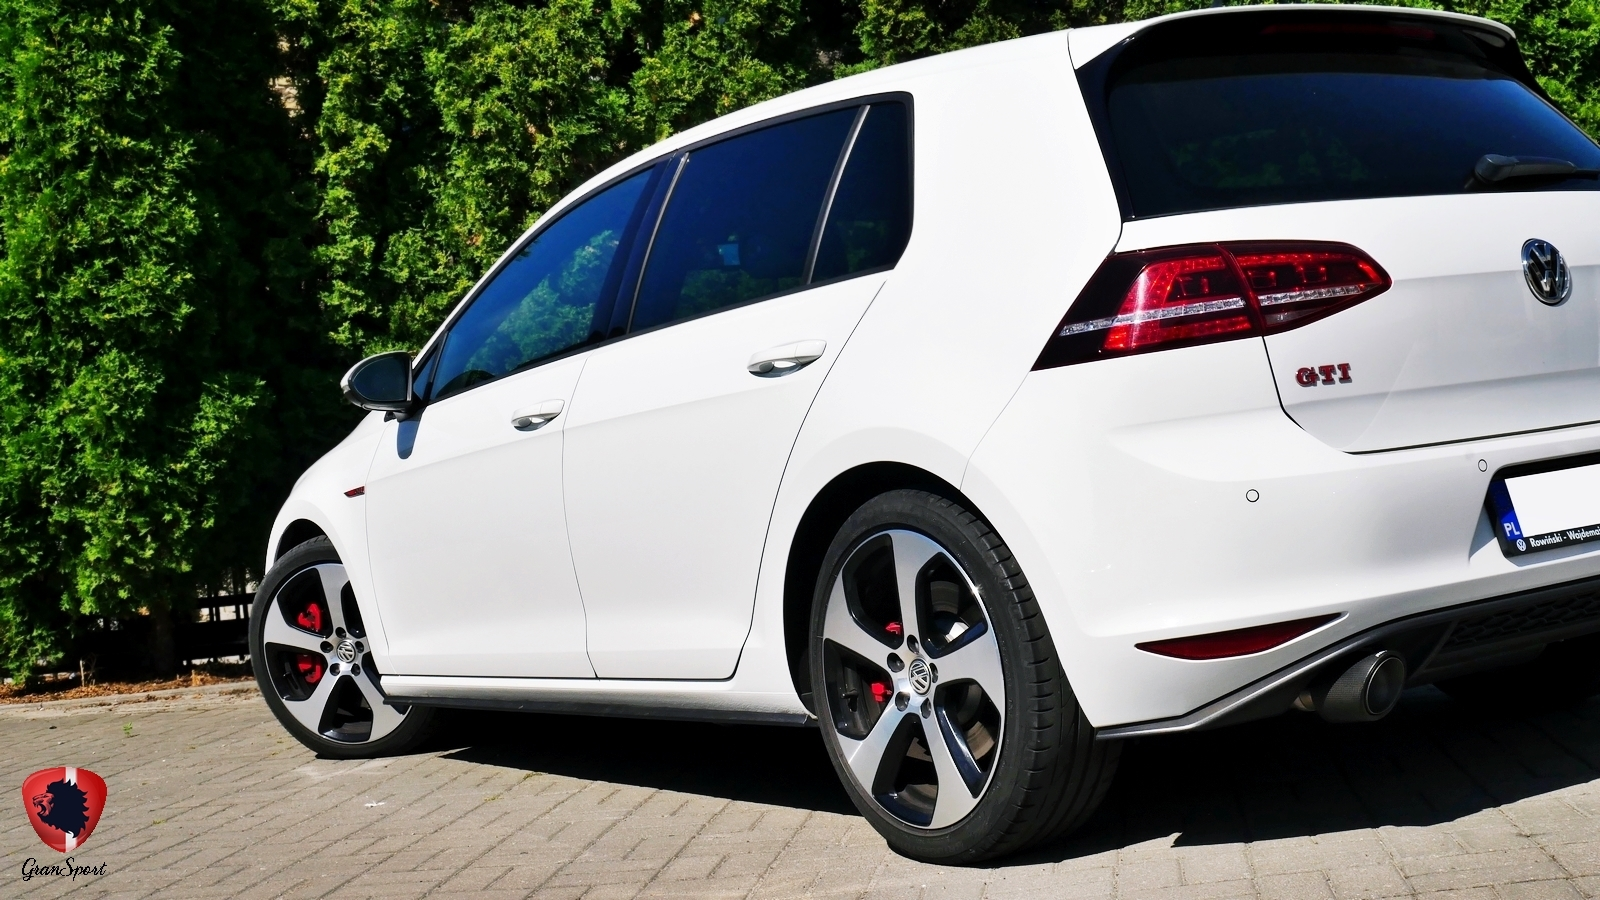 VW Golf 7 GTI Remus